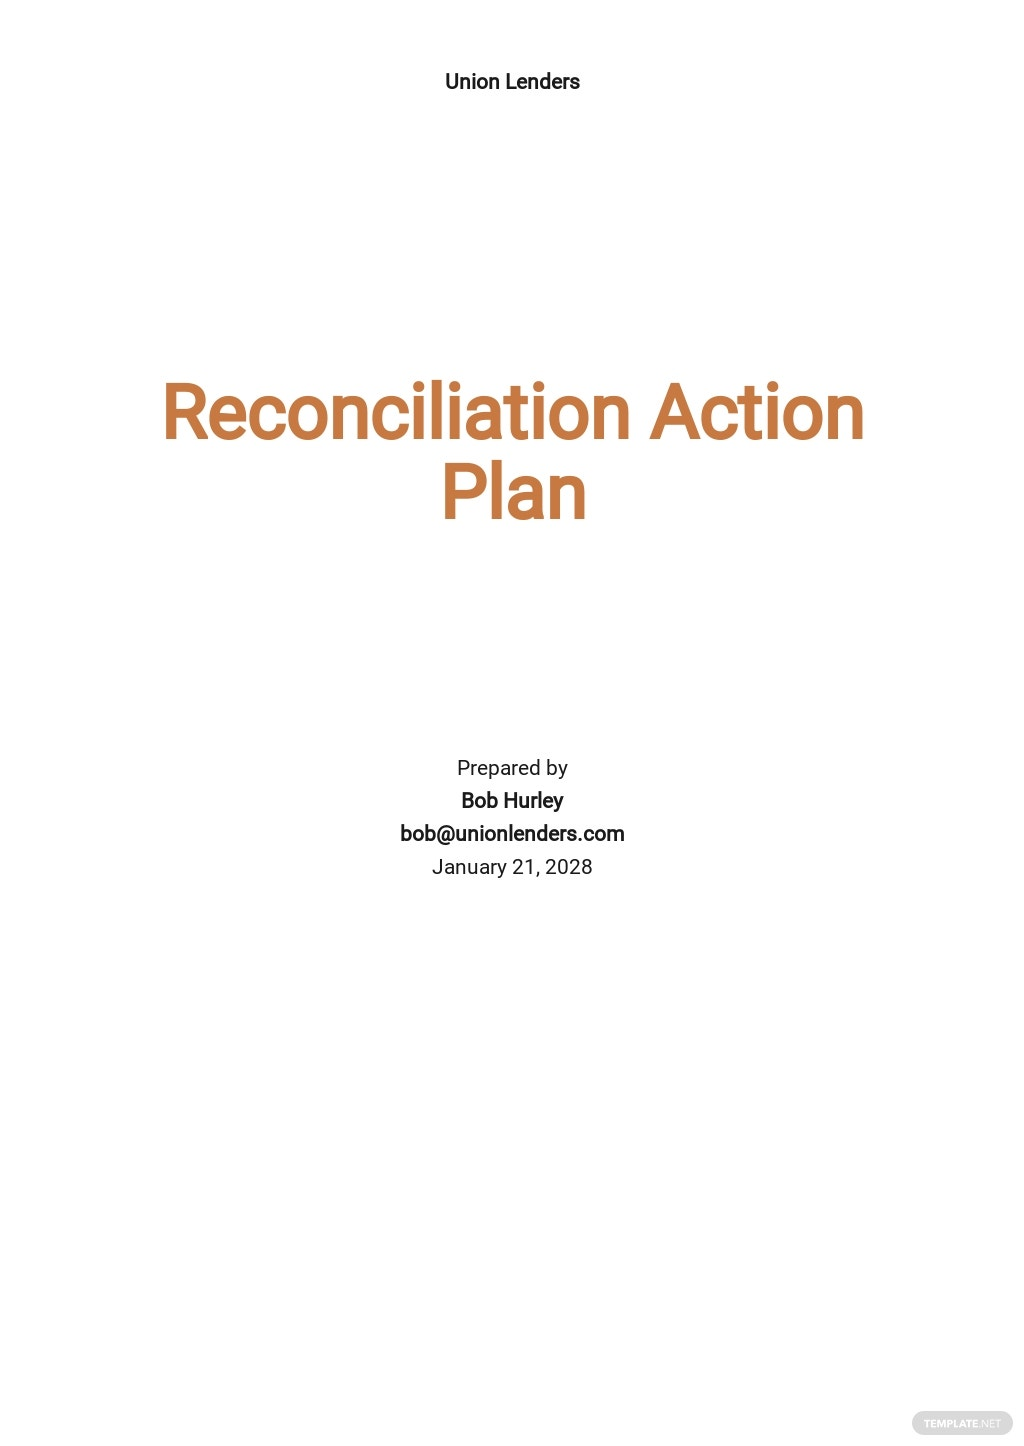 Reconciliation (Accounting) Action Plan Template.jpe